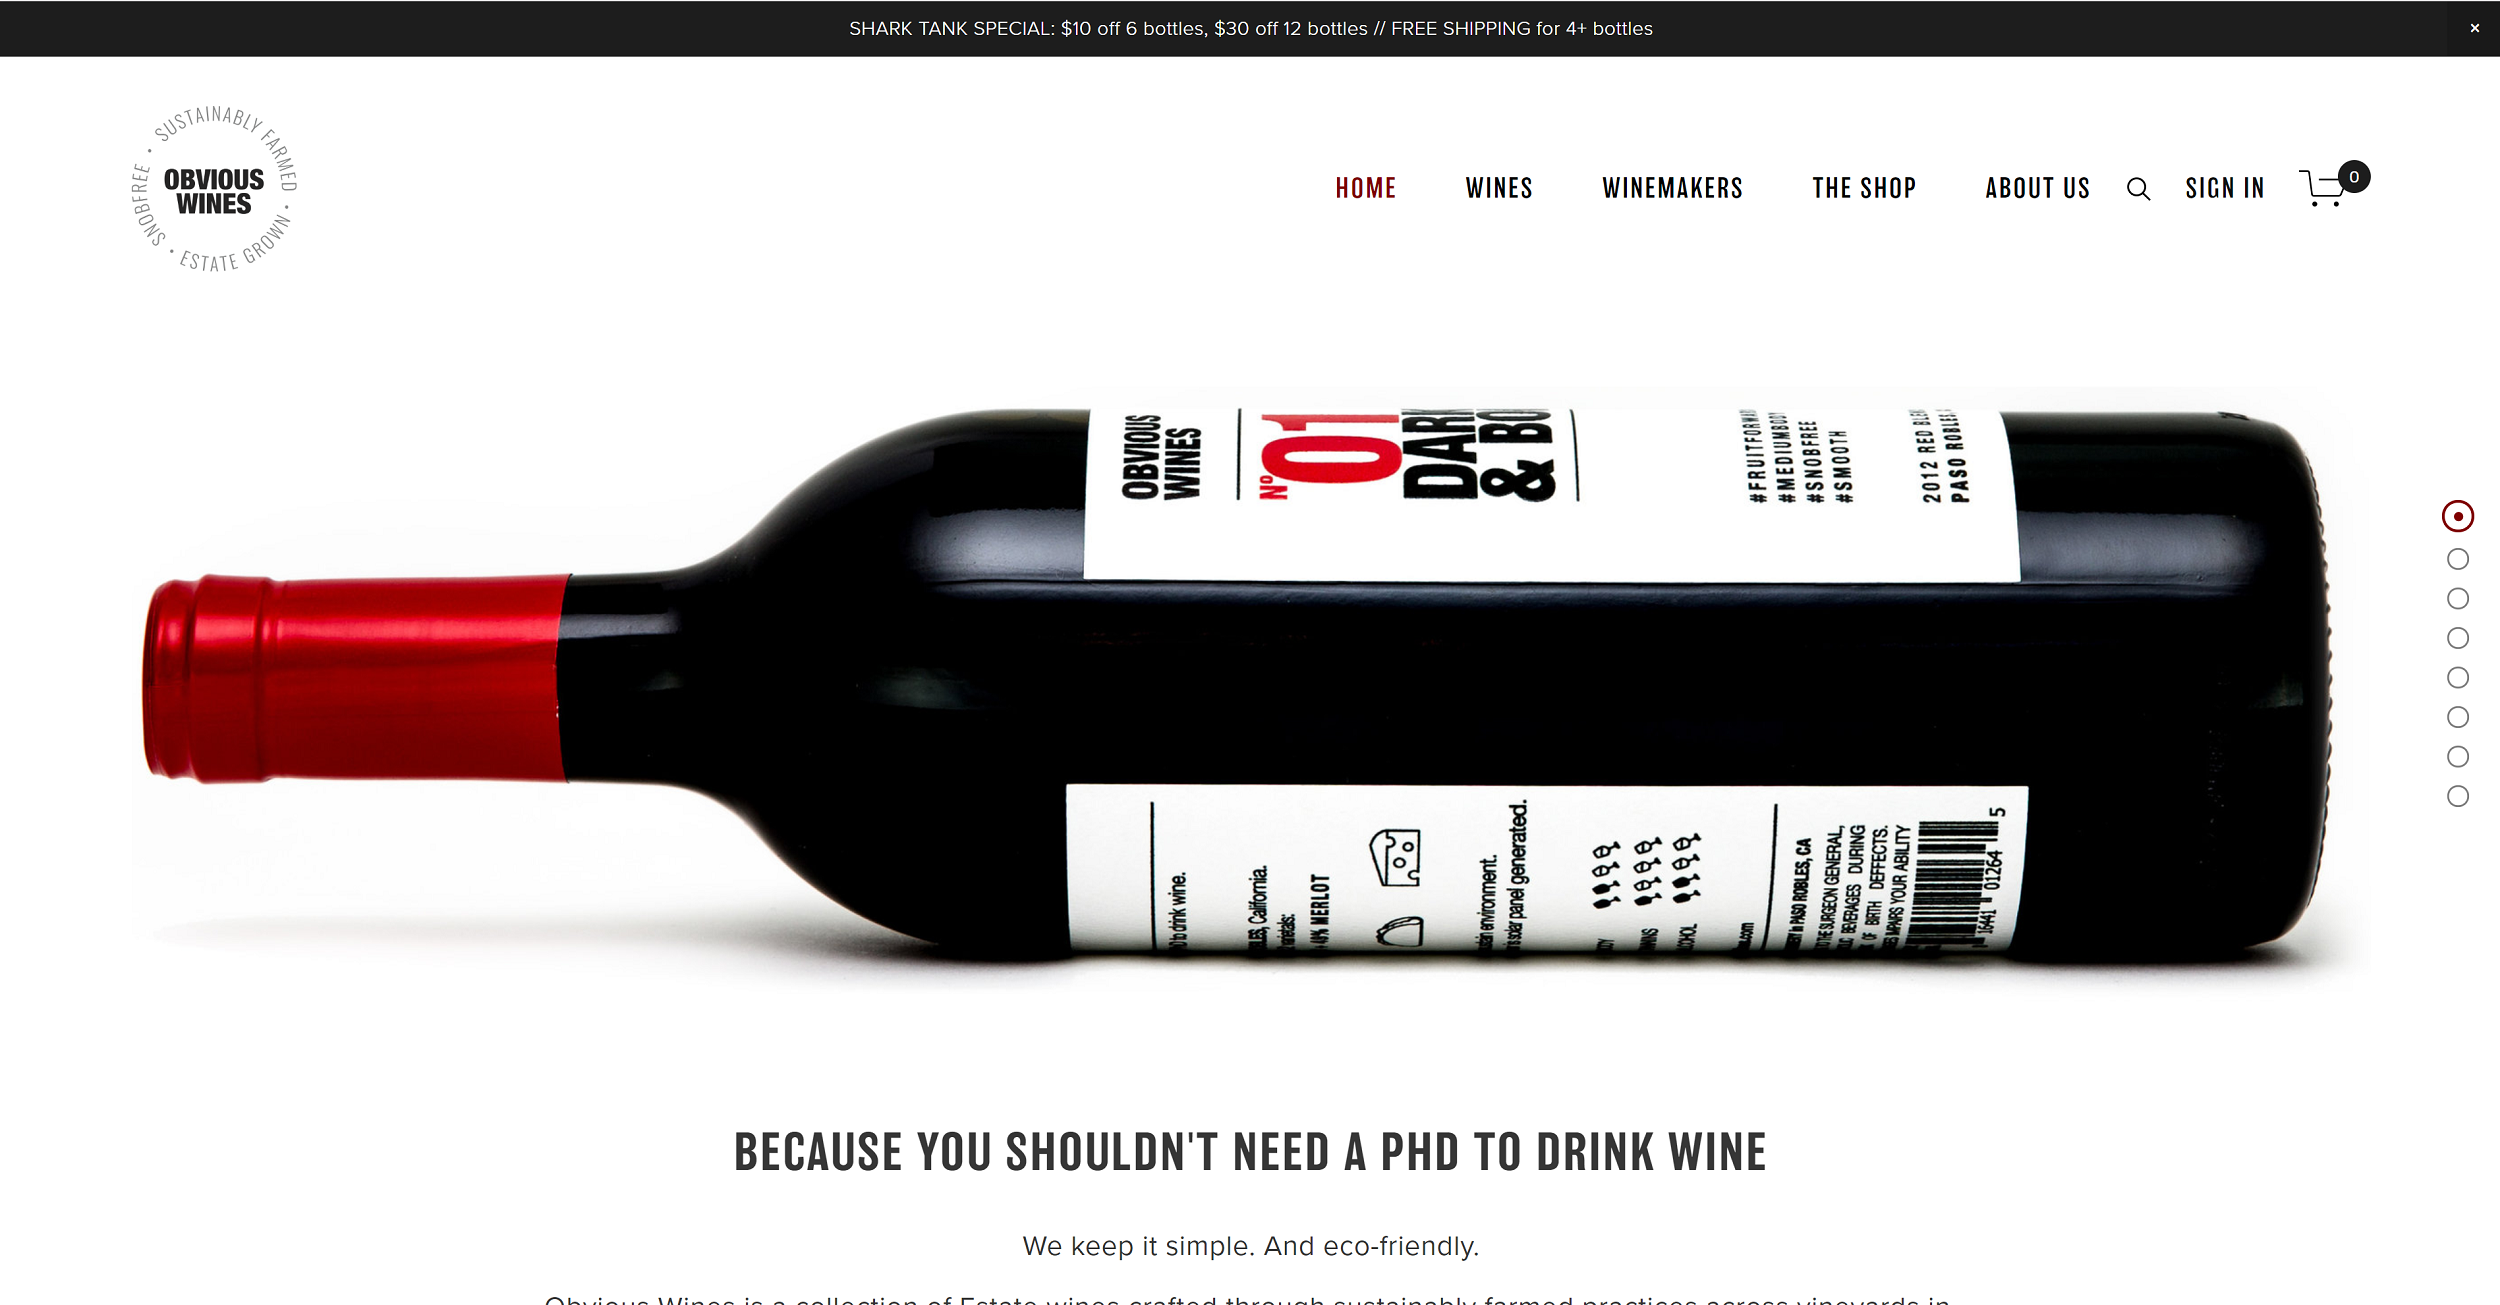 Obvious Wines  Squarespace Website designed by  Belinda Lee Briggs  (featured on  Shark Tank )